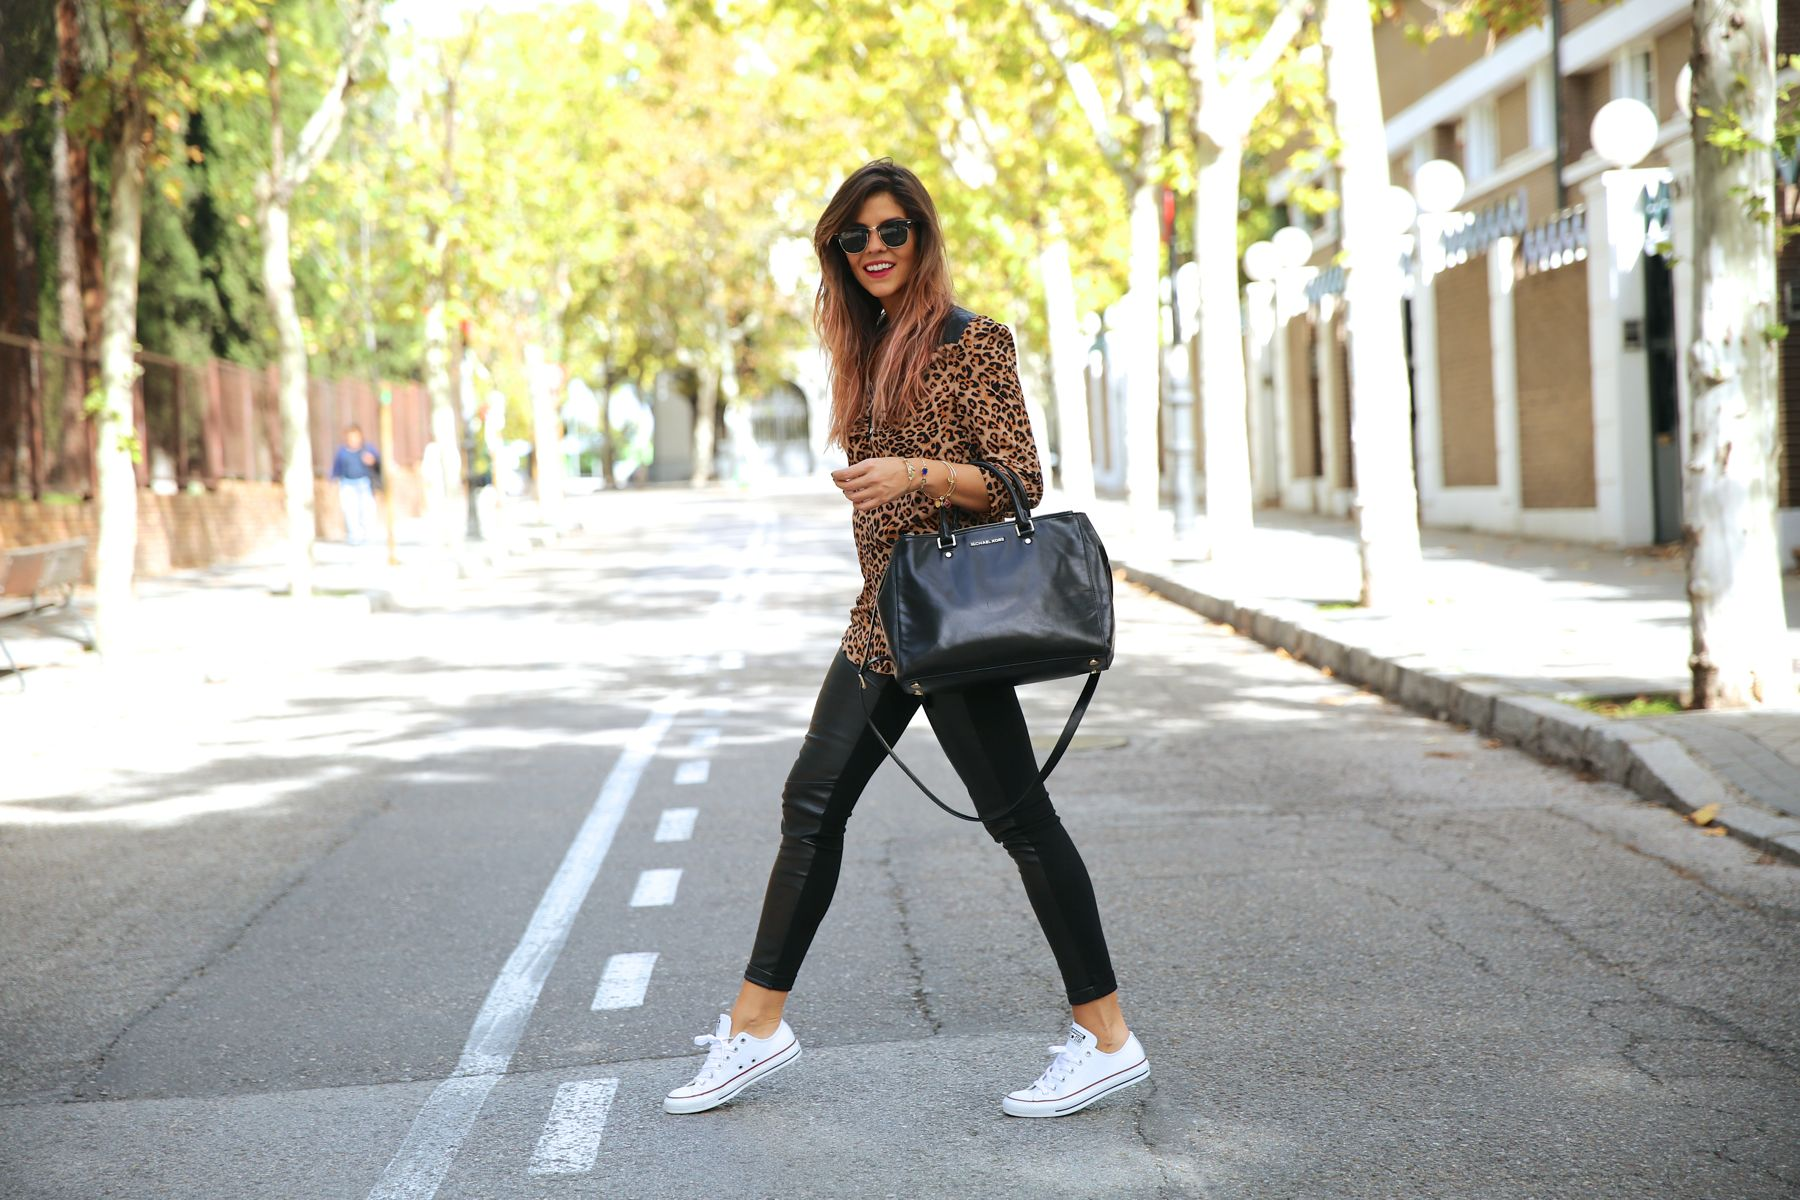 trendy_taste-look-outfit-street_style-ootd-blog-blogger-fashion_spain-moda_españa-leo_print-leopardo-converse-all_star-michael_kors-leggings-clubmaster-10